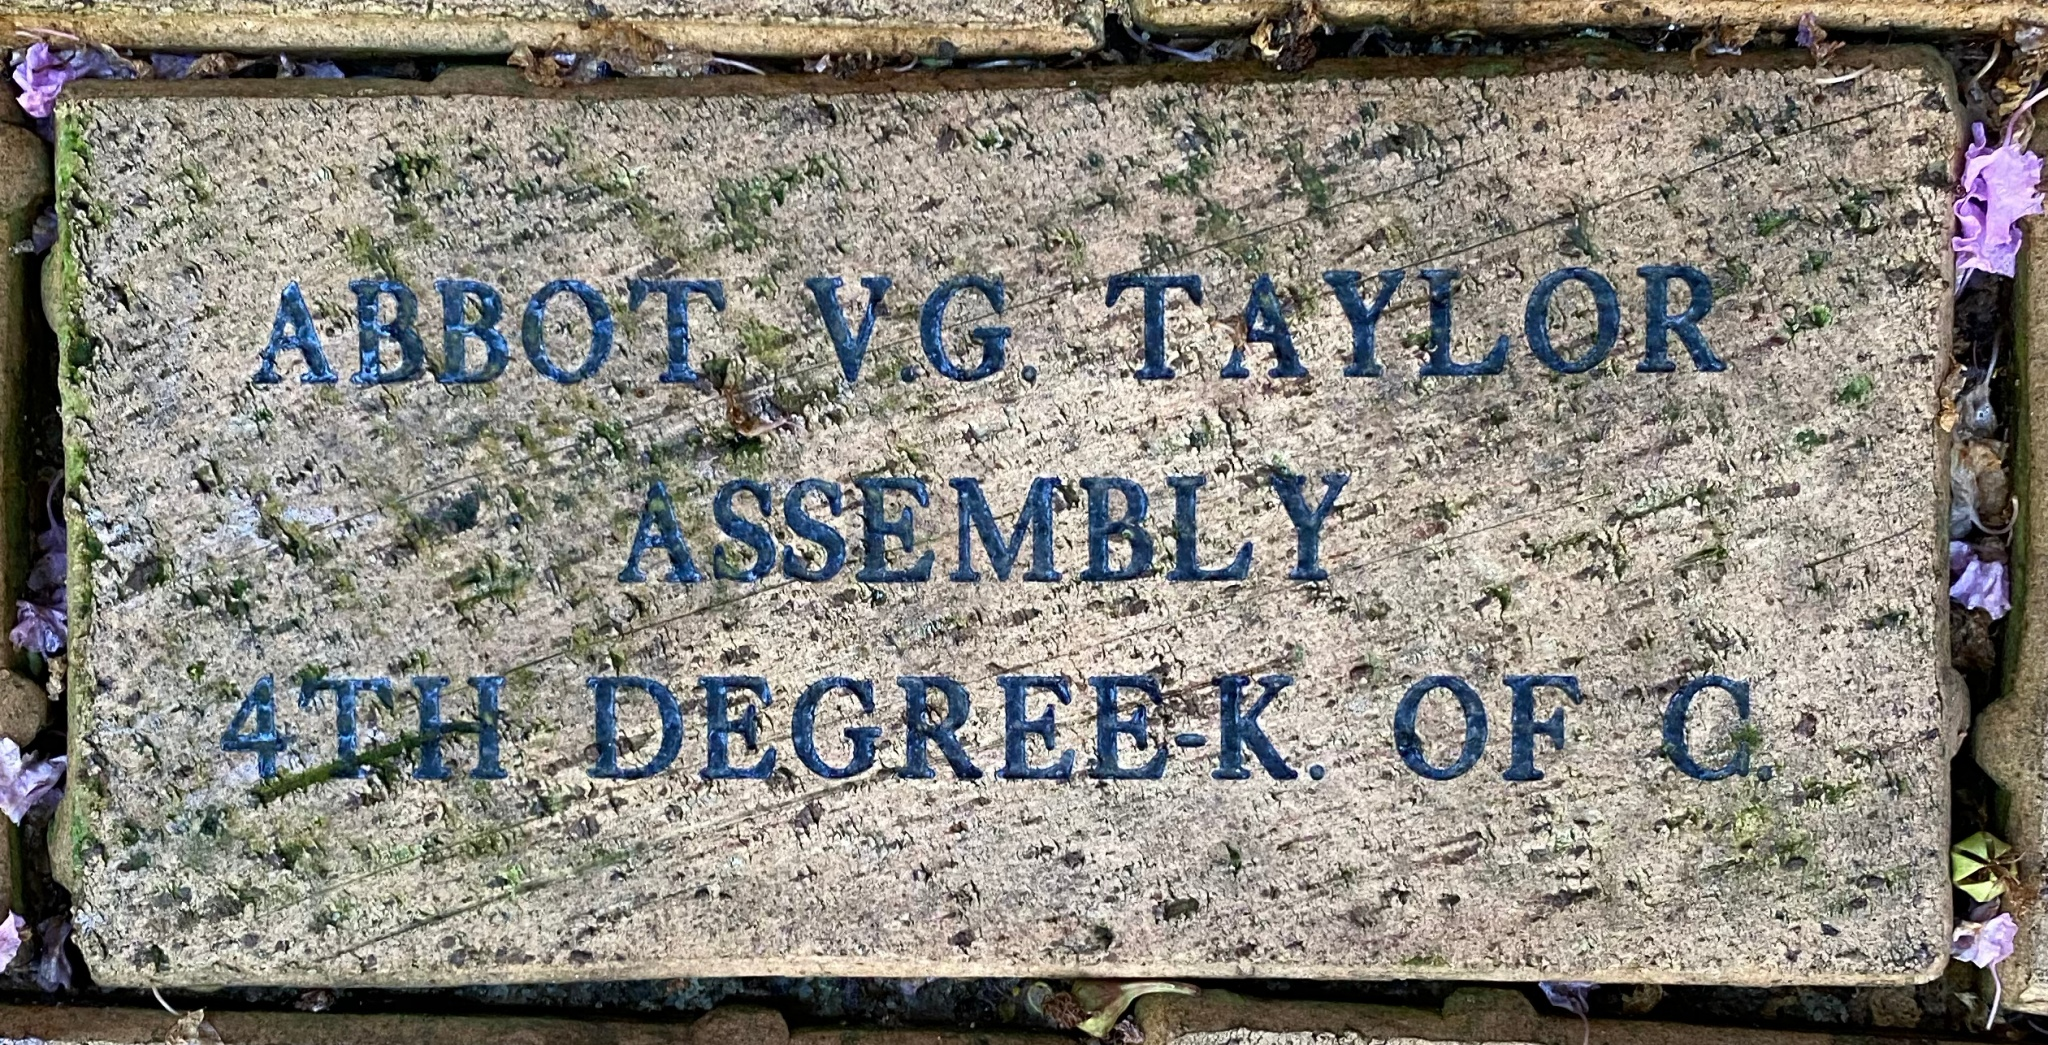 ABBOT V.G. TAYLOR ASSEMBLY 4TH DEGREE-K.OF C.